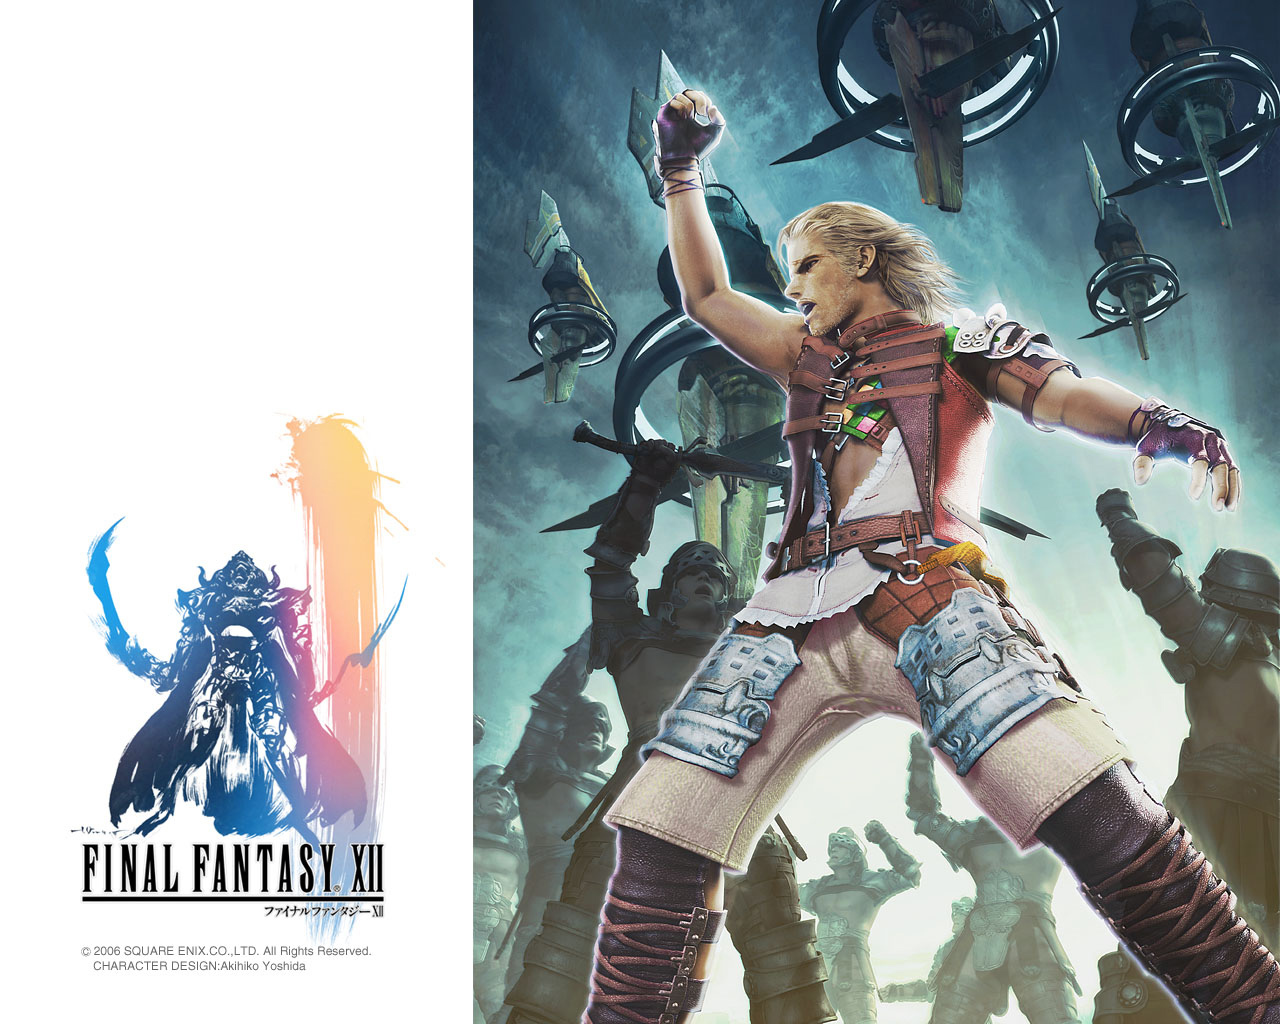 Final Fantasy 12 Wallpaper: Persona Group World: Manski's Final Fantasy XII:The Truth